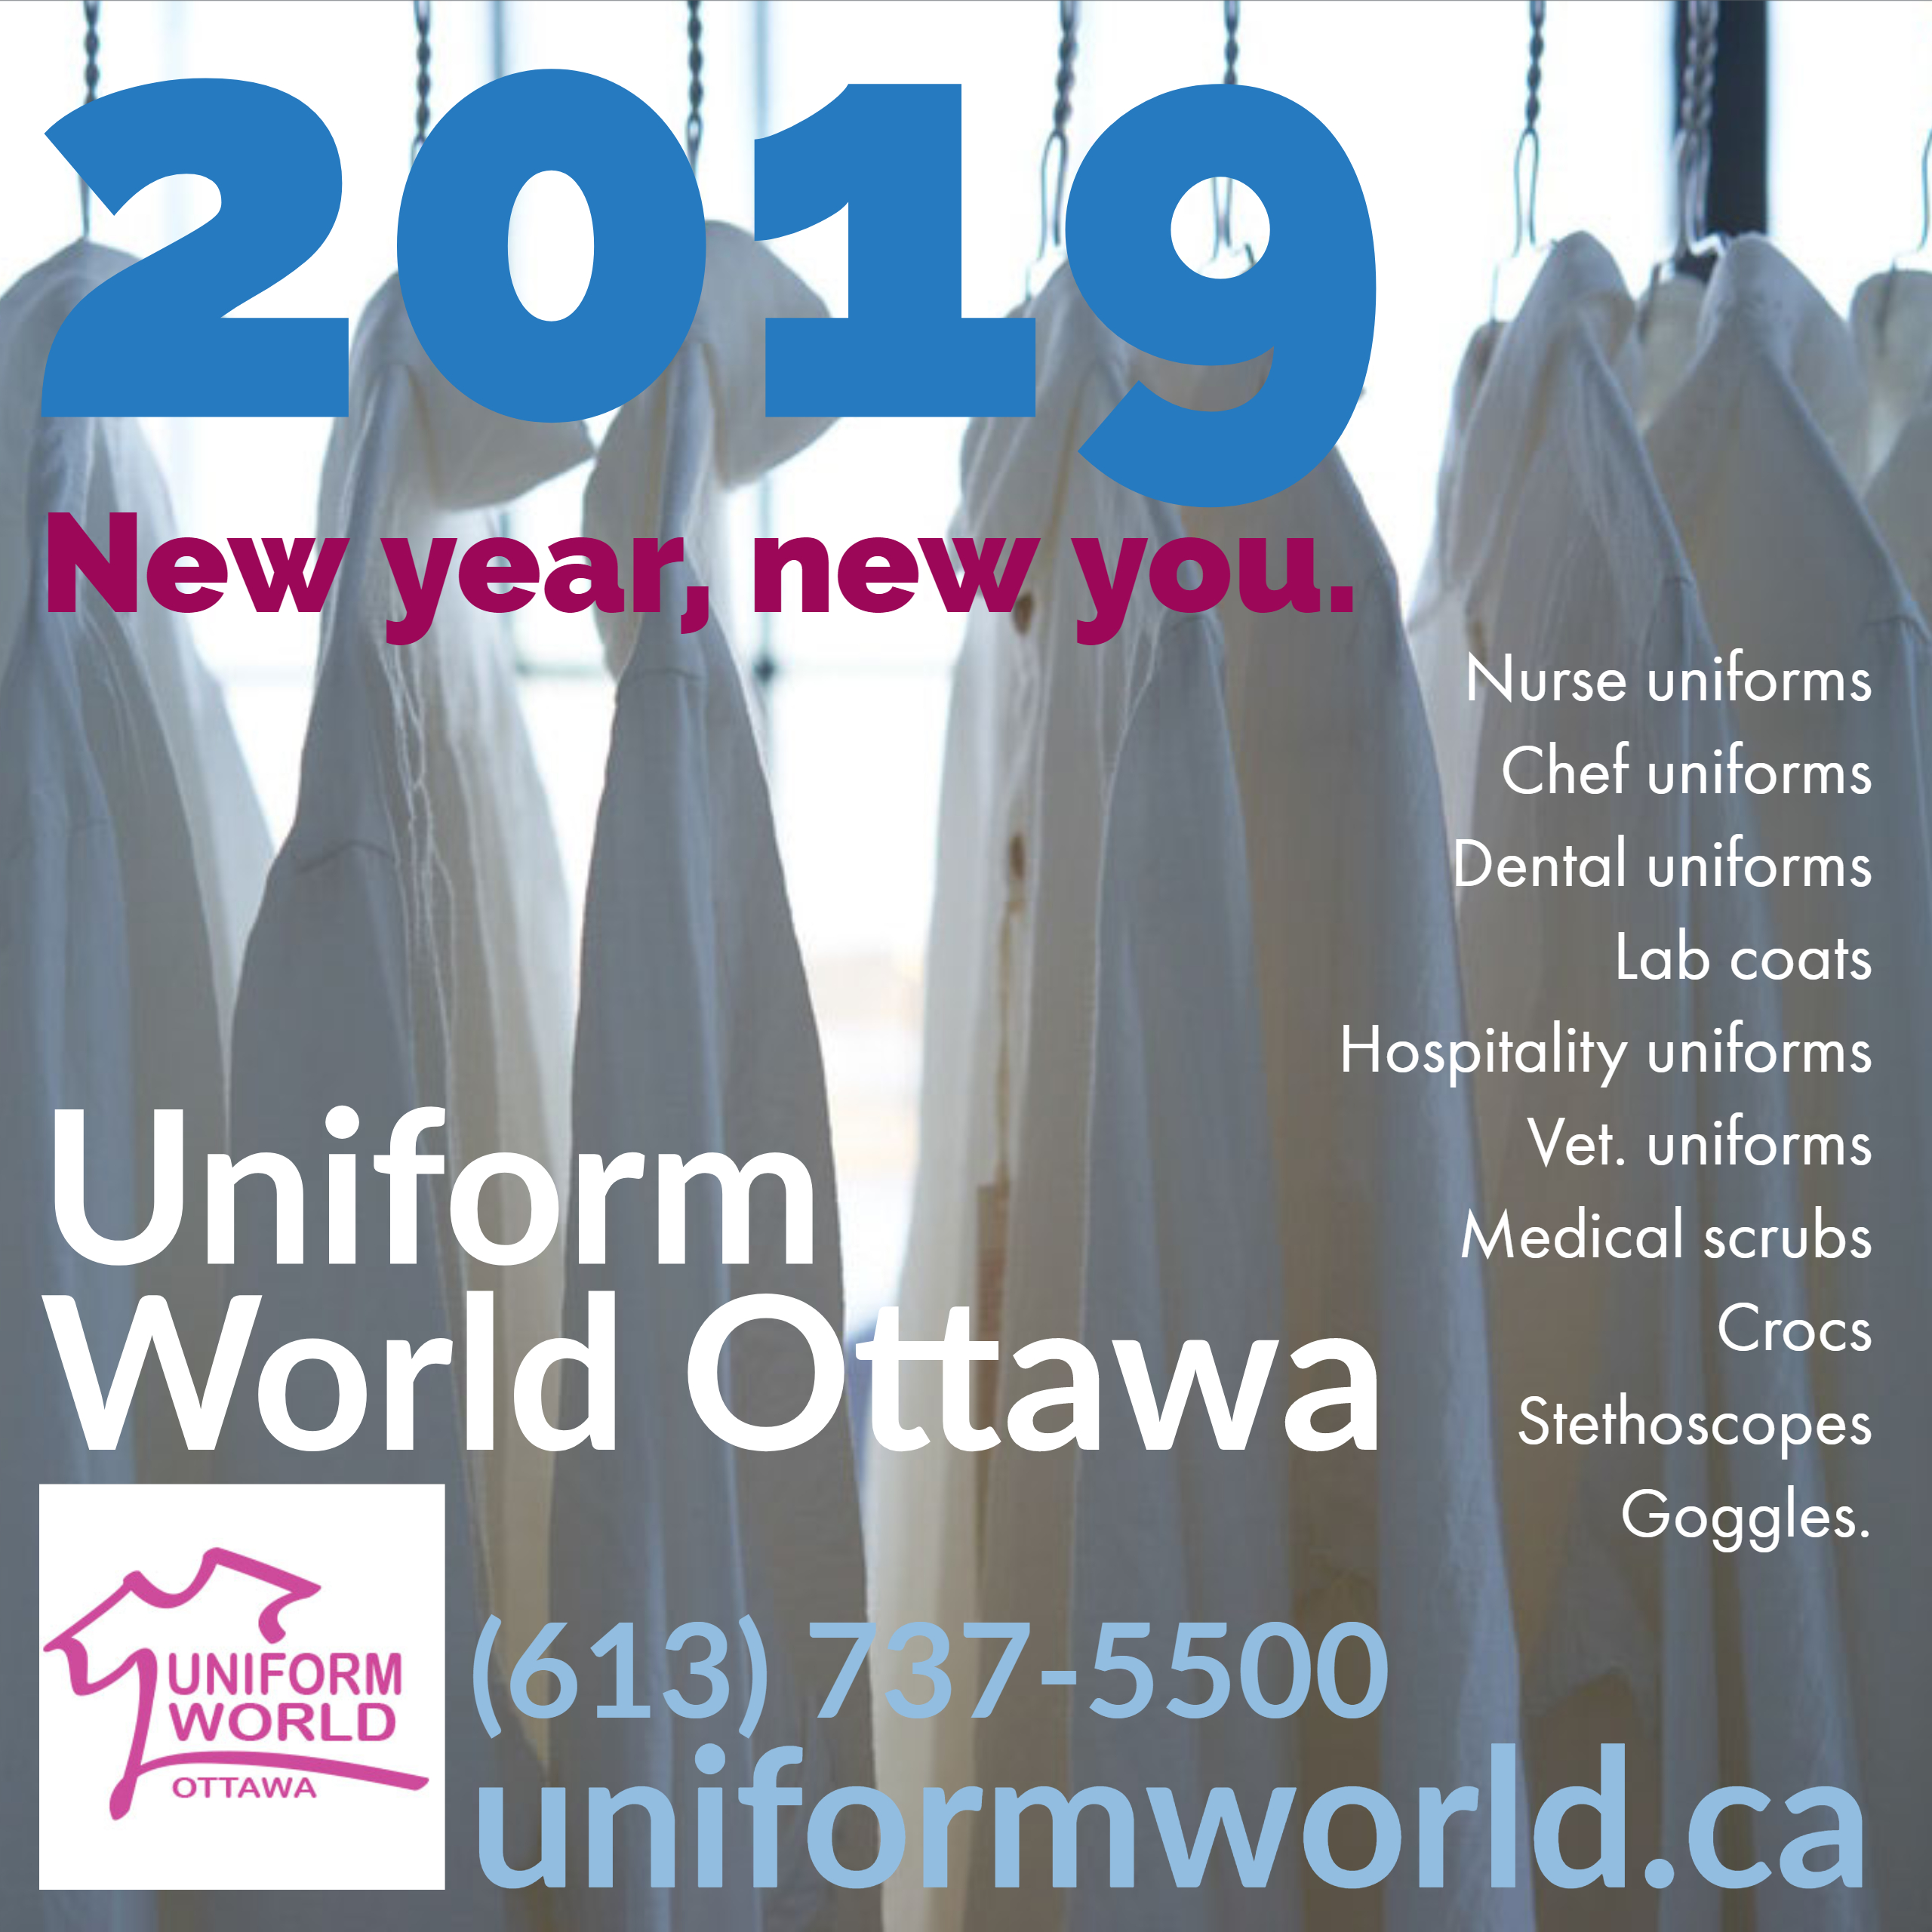 daed0eb9053 We offer you the largest inventory of scrubs & uniforms in the Ottawa  Valley! We have nursing uniforms, chef uniforms and everything in between.